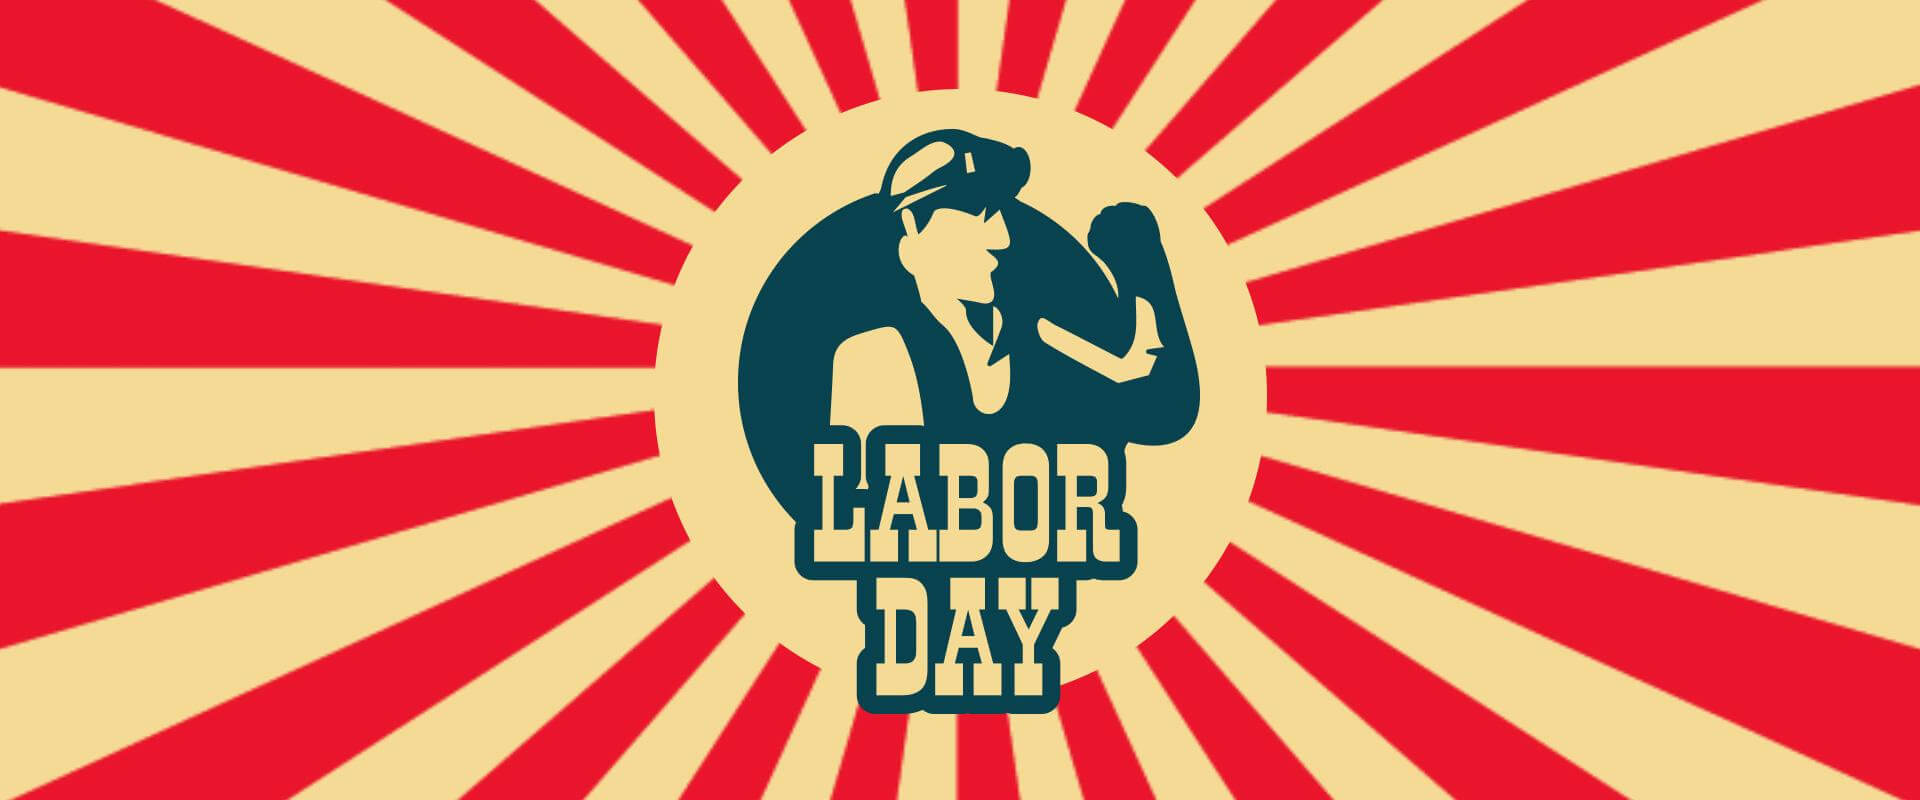 happy labor day background hd wallpaper